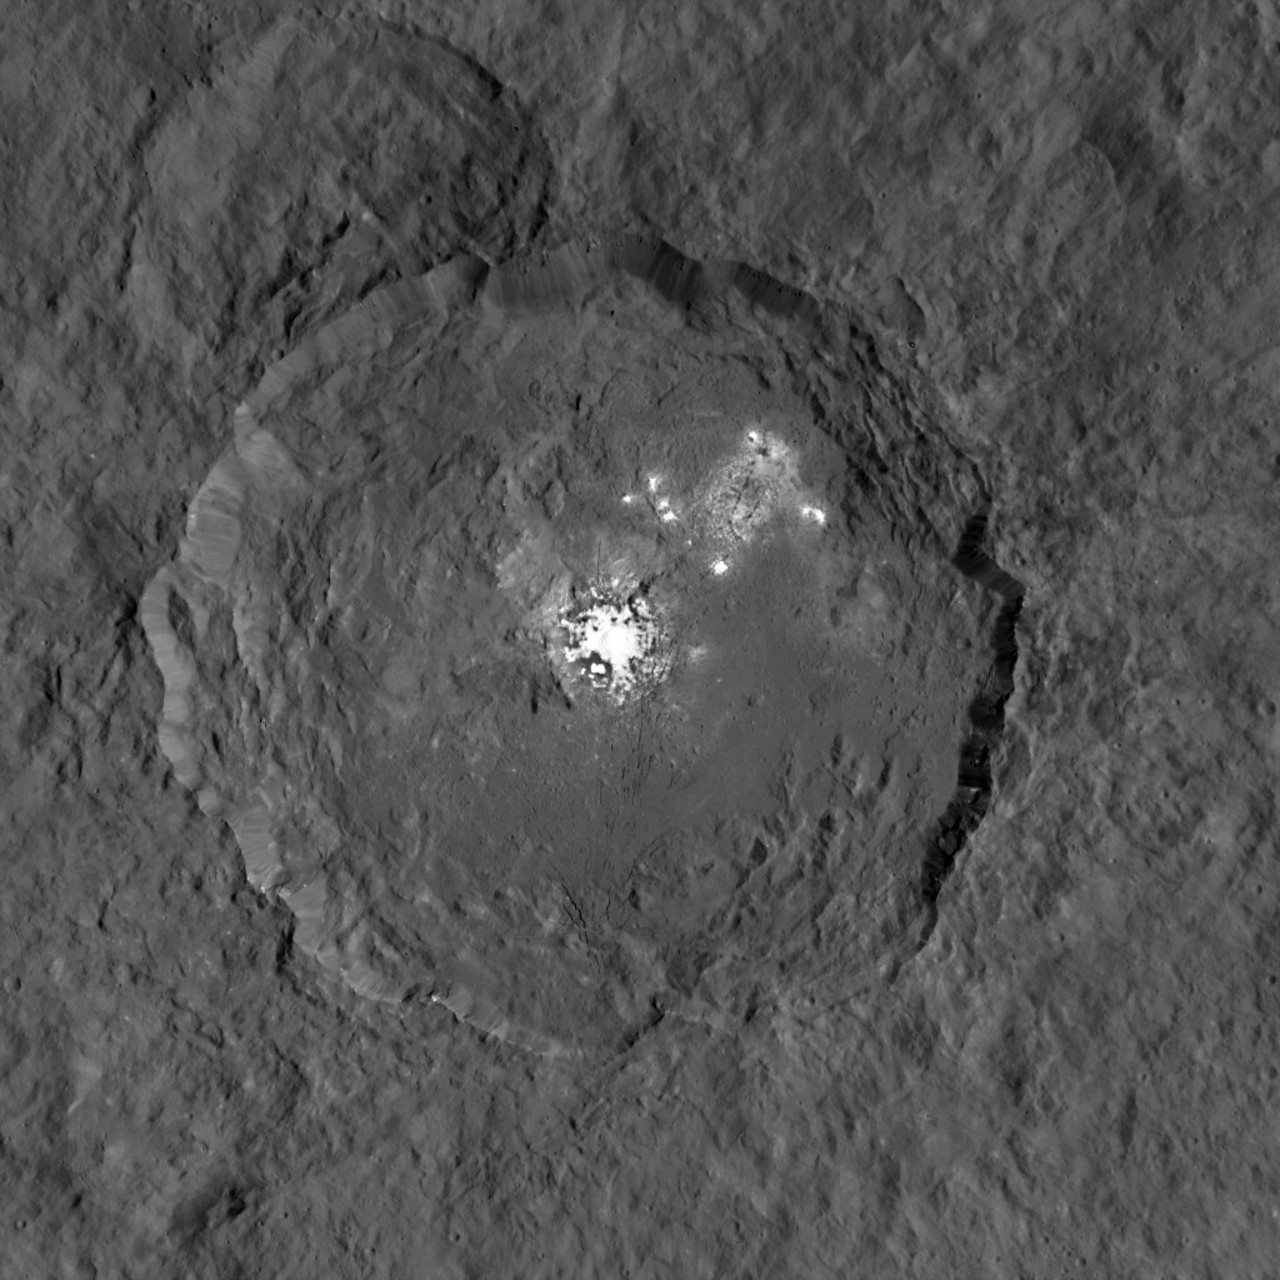 Ceres Occator Crater Bright Spot